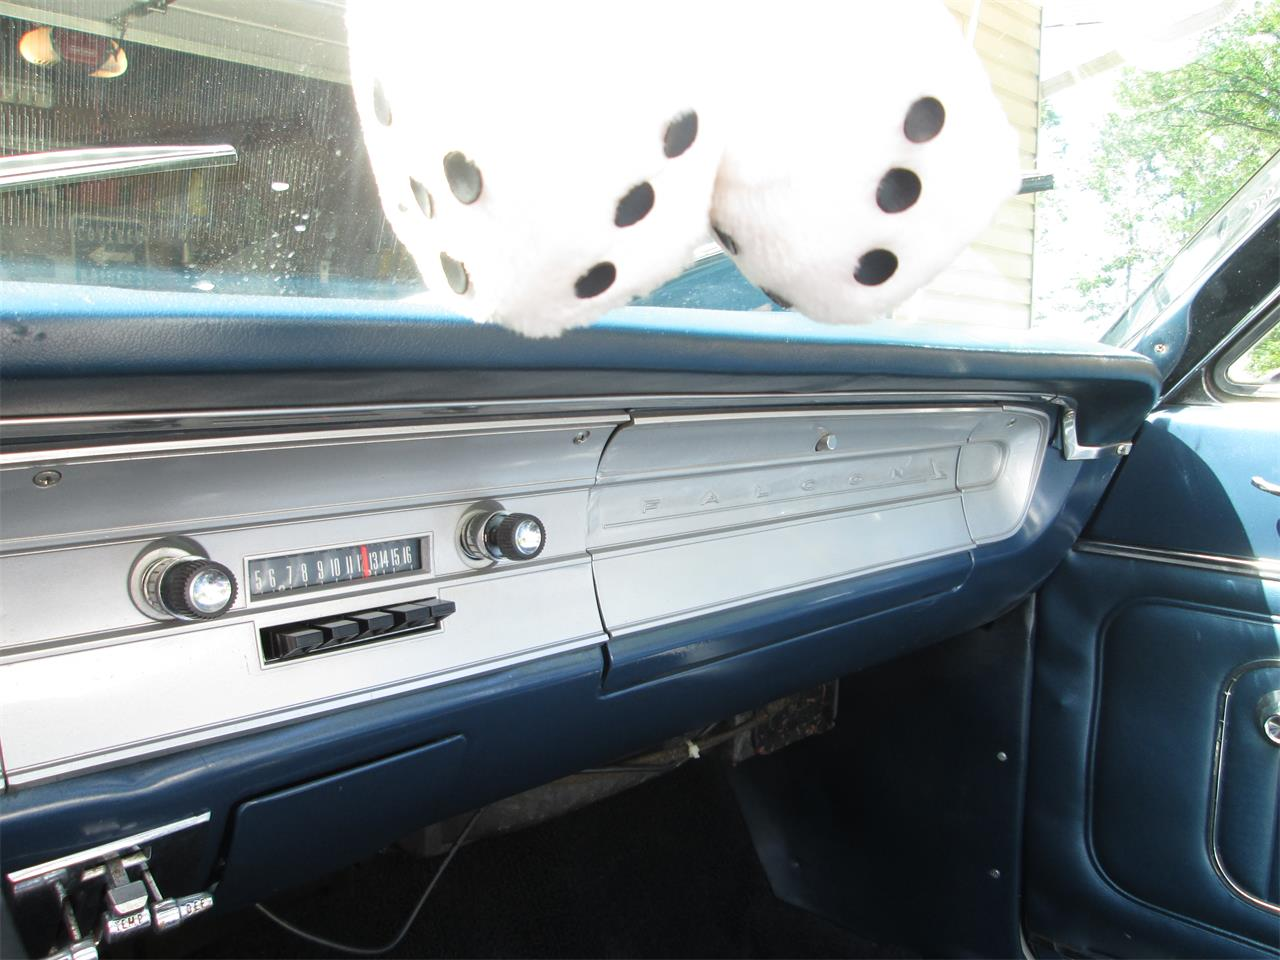 Large Picture of Classic '64 Ford Falcon - $14,500.00 Offered by a Private Seller - Q4YA